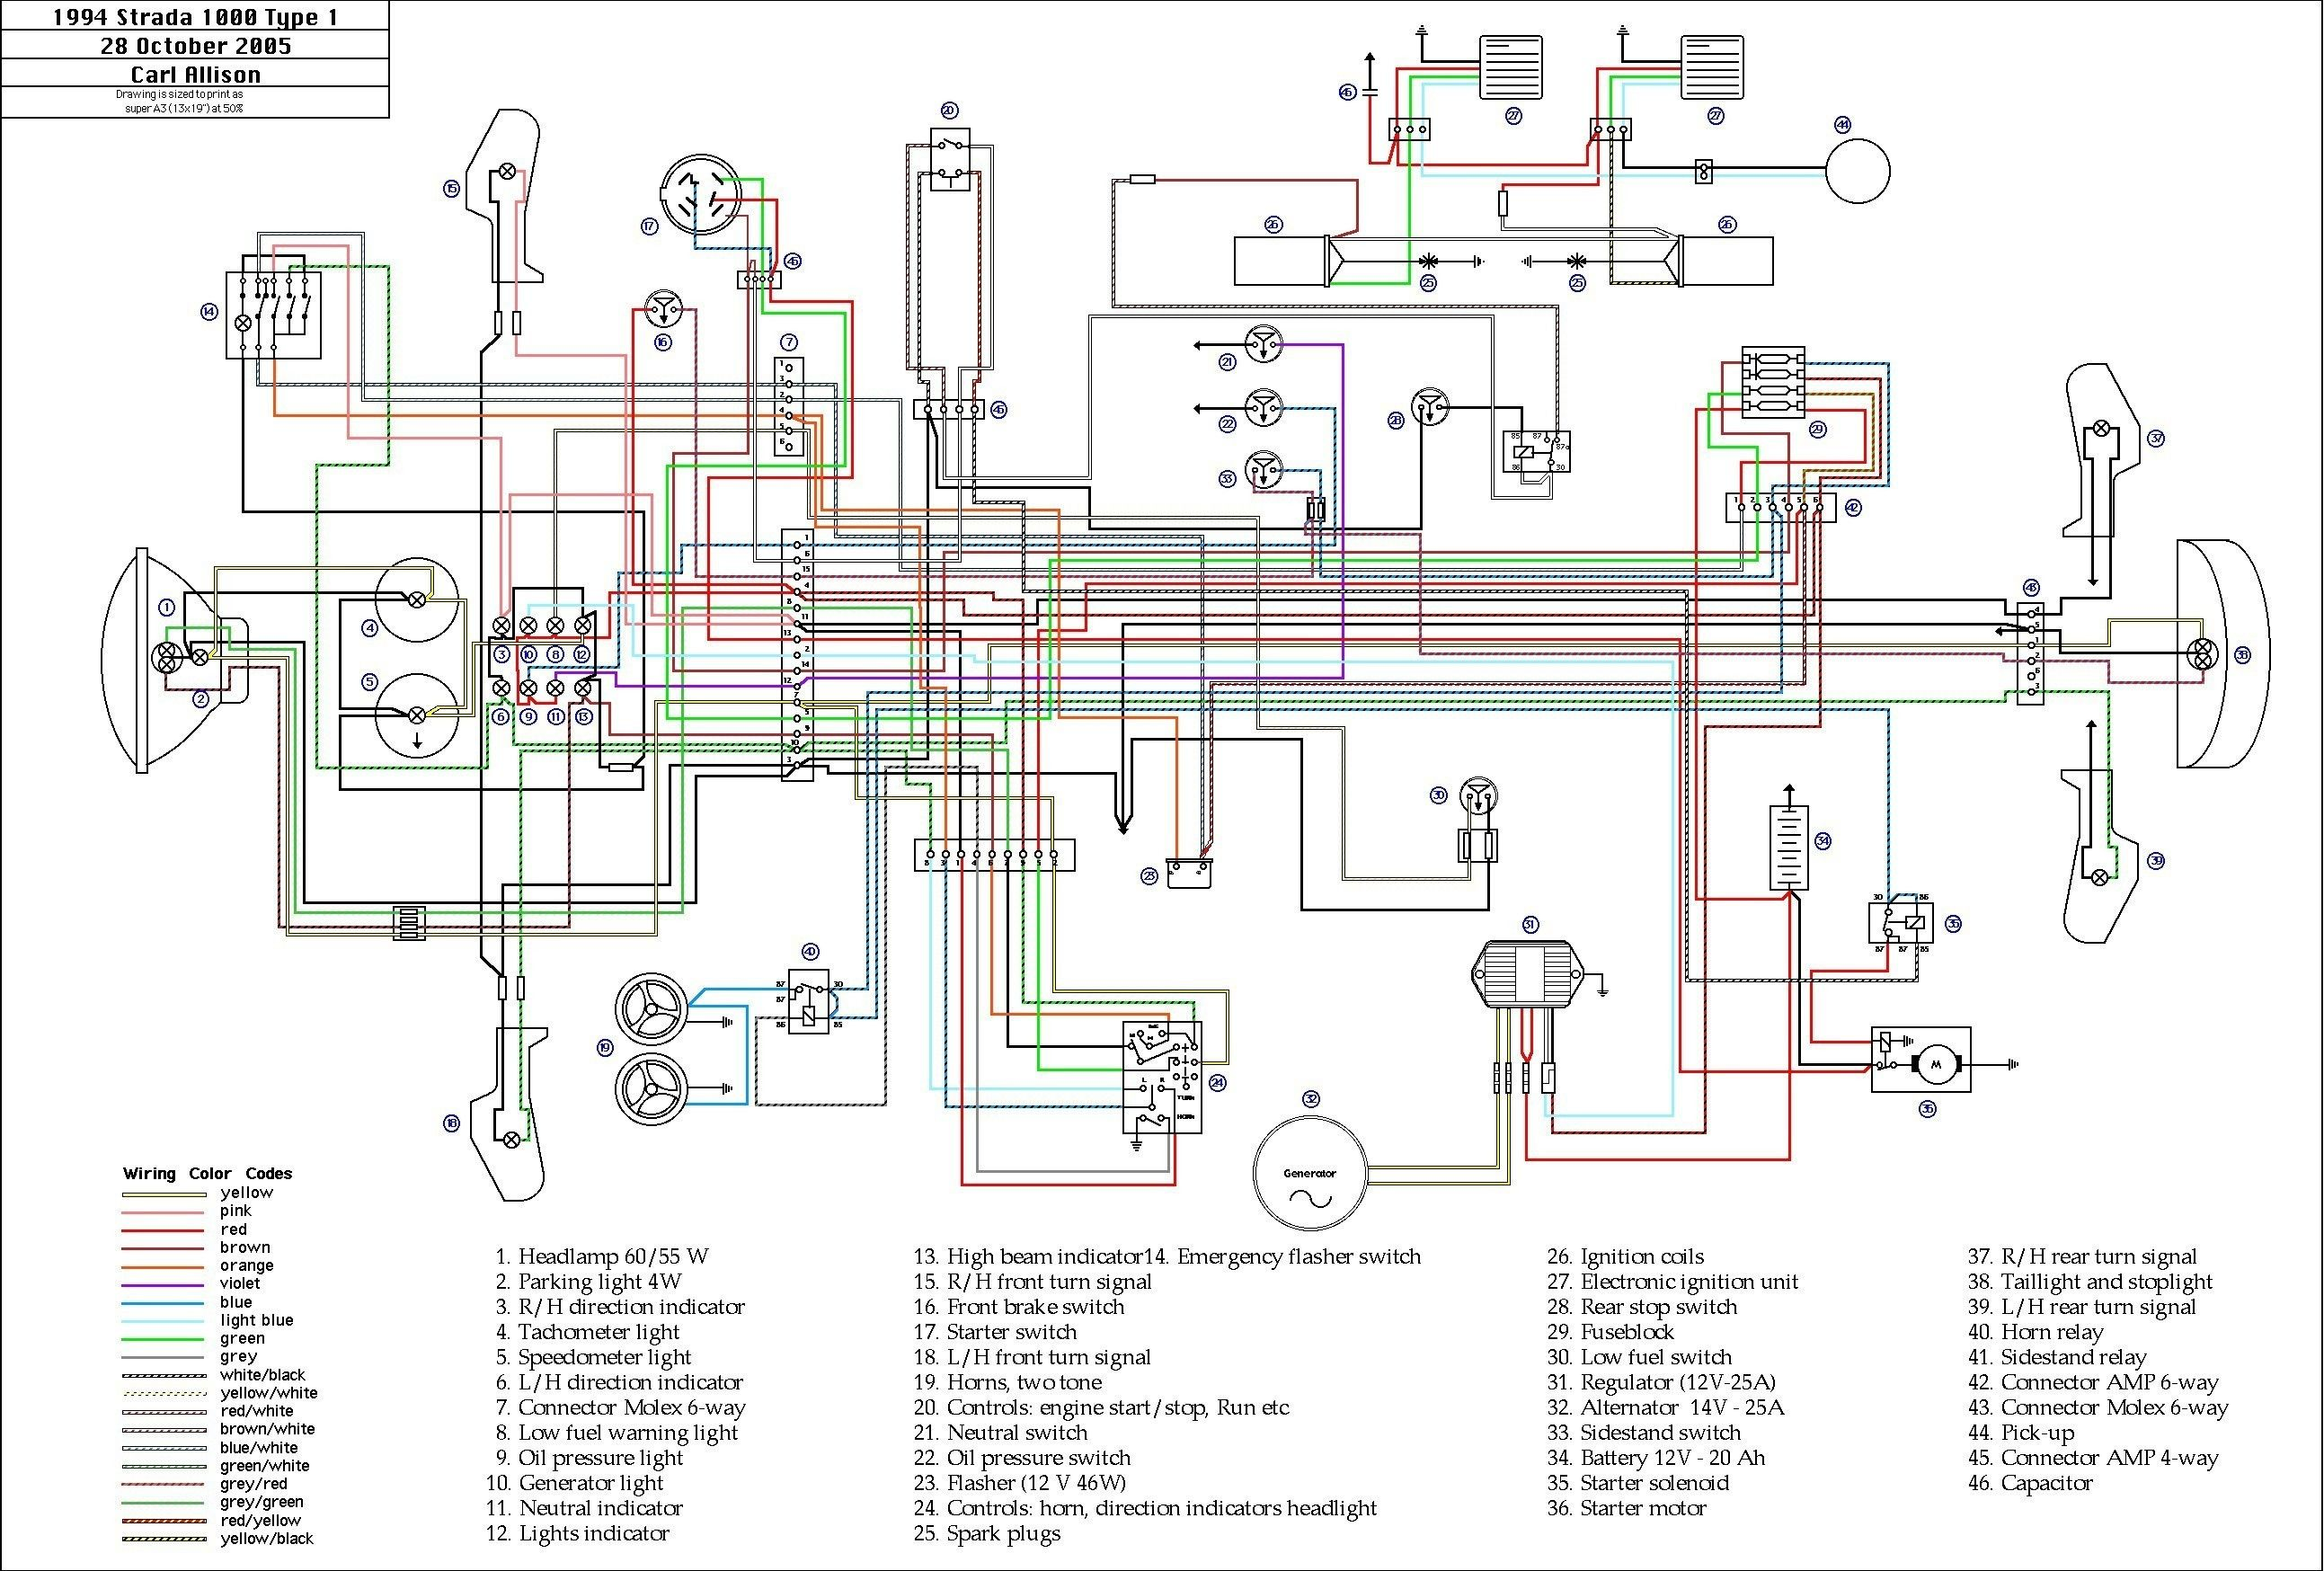 Yamaha 350 Warrior Wiring Schematic Schematic And Wiring Diagram